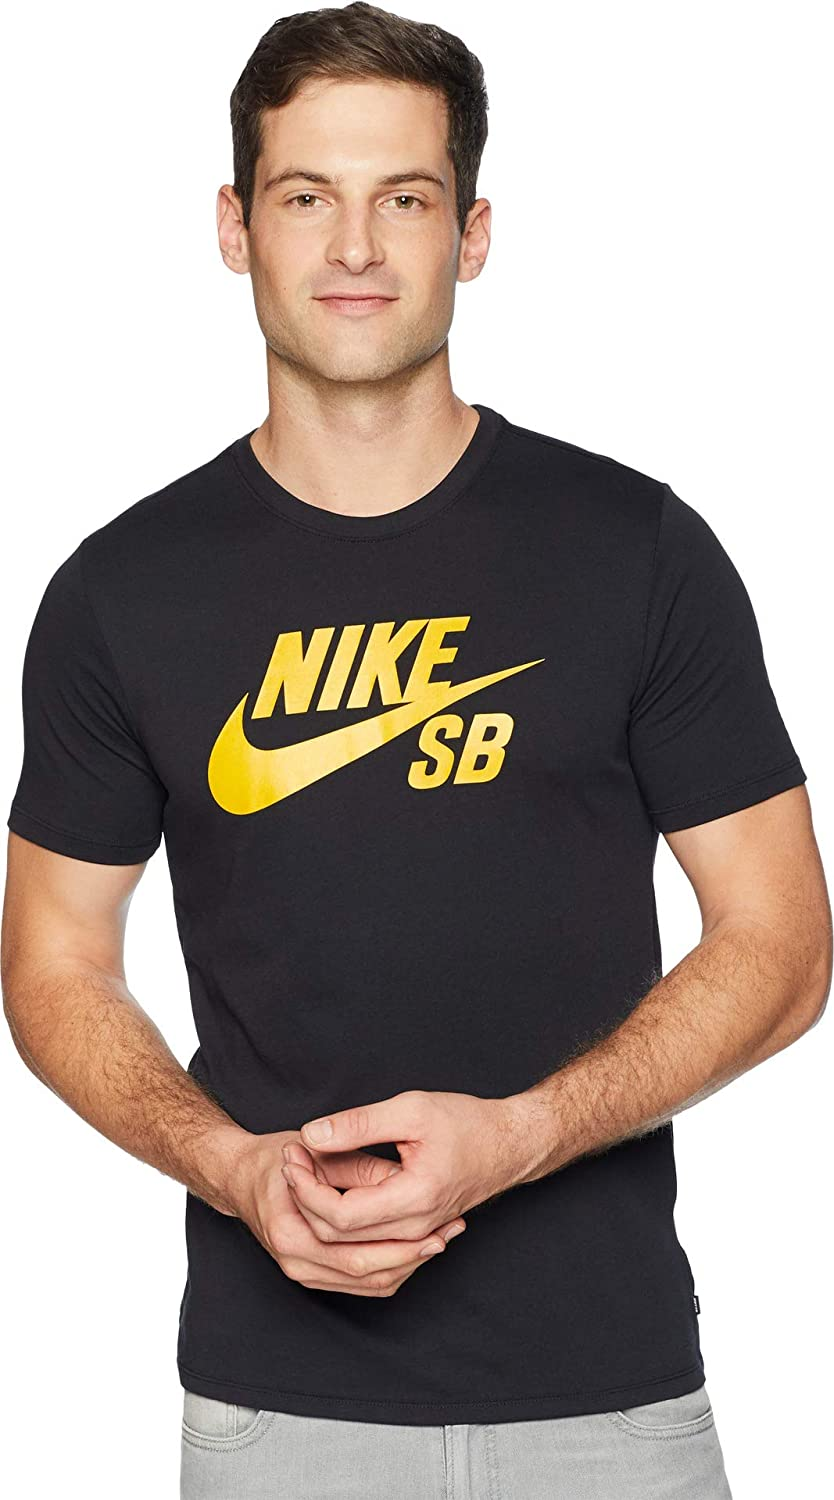 69de7851 Nike Men's SB Logo Dri-Fit T-Shirt, Black, X-Large: Amazon.co.uk: Clothing